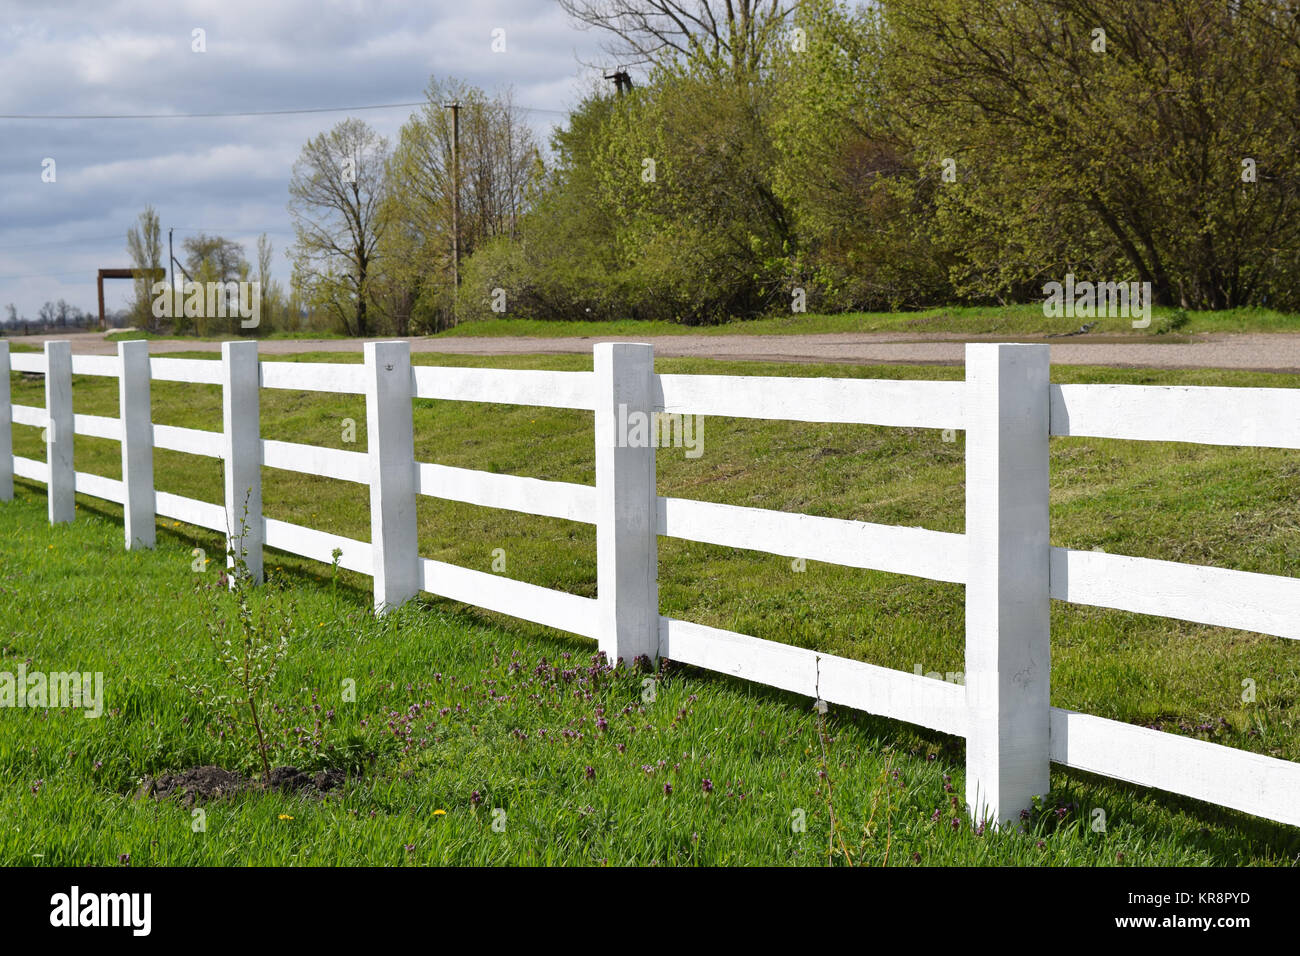 Cloture En Bois Blanc white wooden fence around the ranch stock photo: 169224033